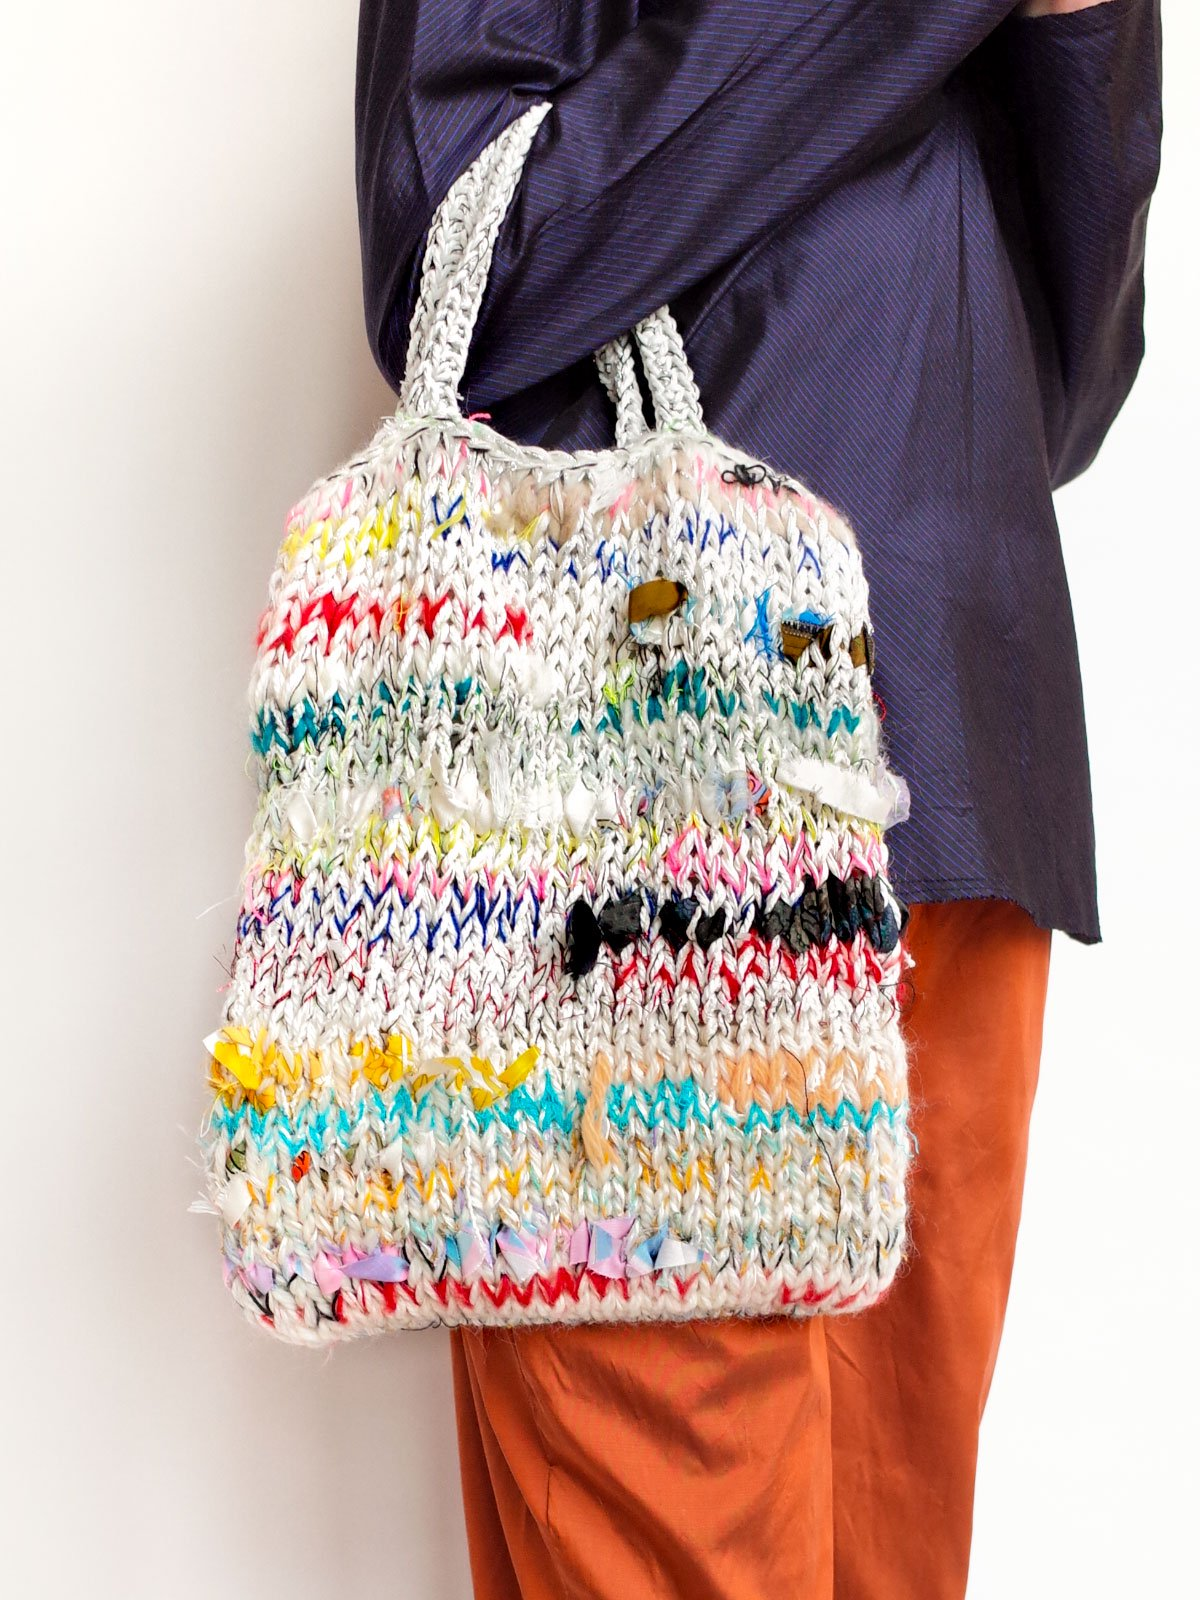 ari × mamarobot / Knit Bag / white